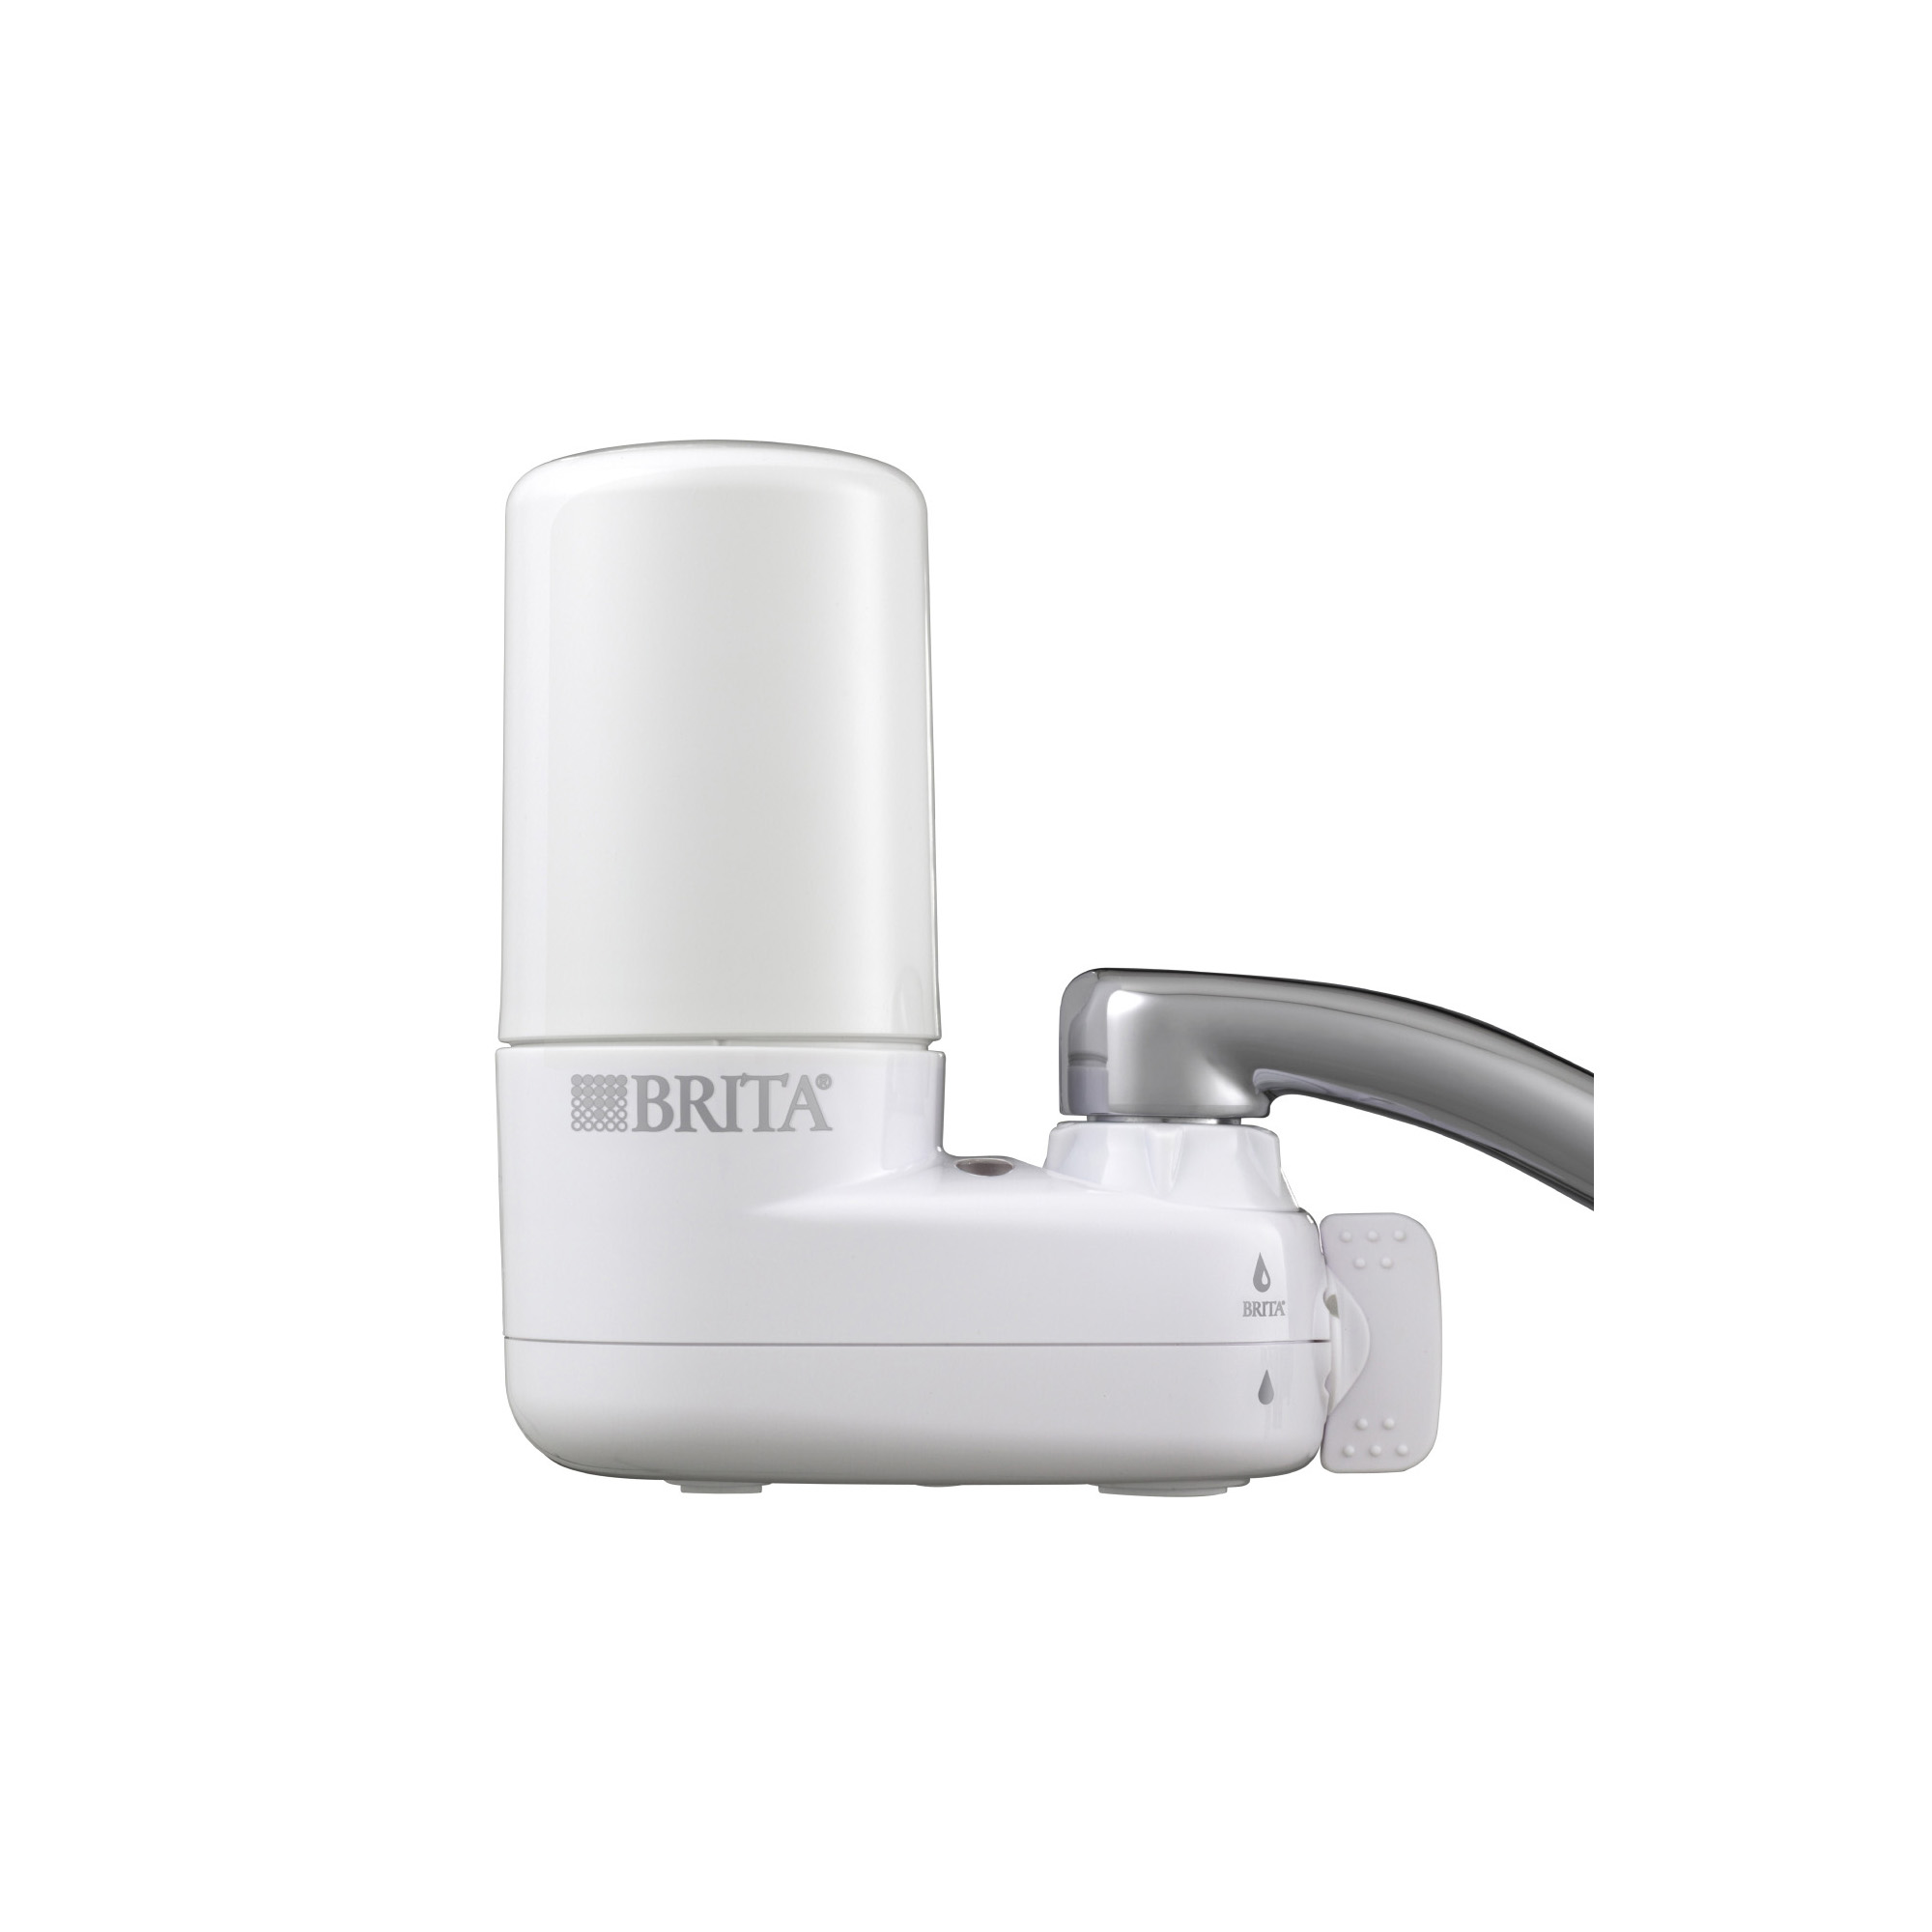 PUR Basic Faucet Water Filter Black, FM-2000B - Walmart.com